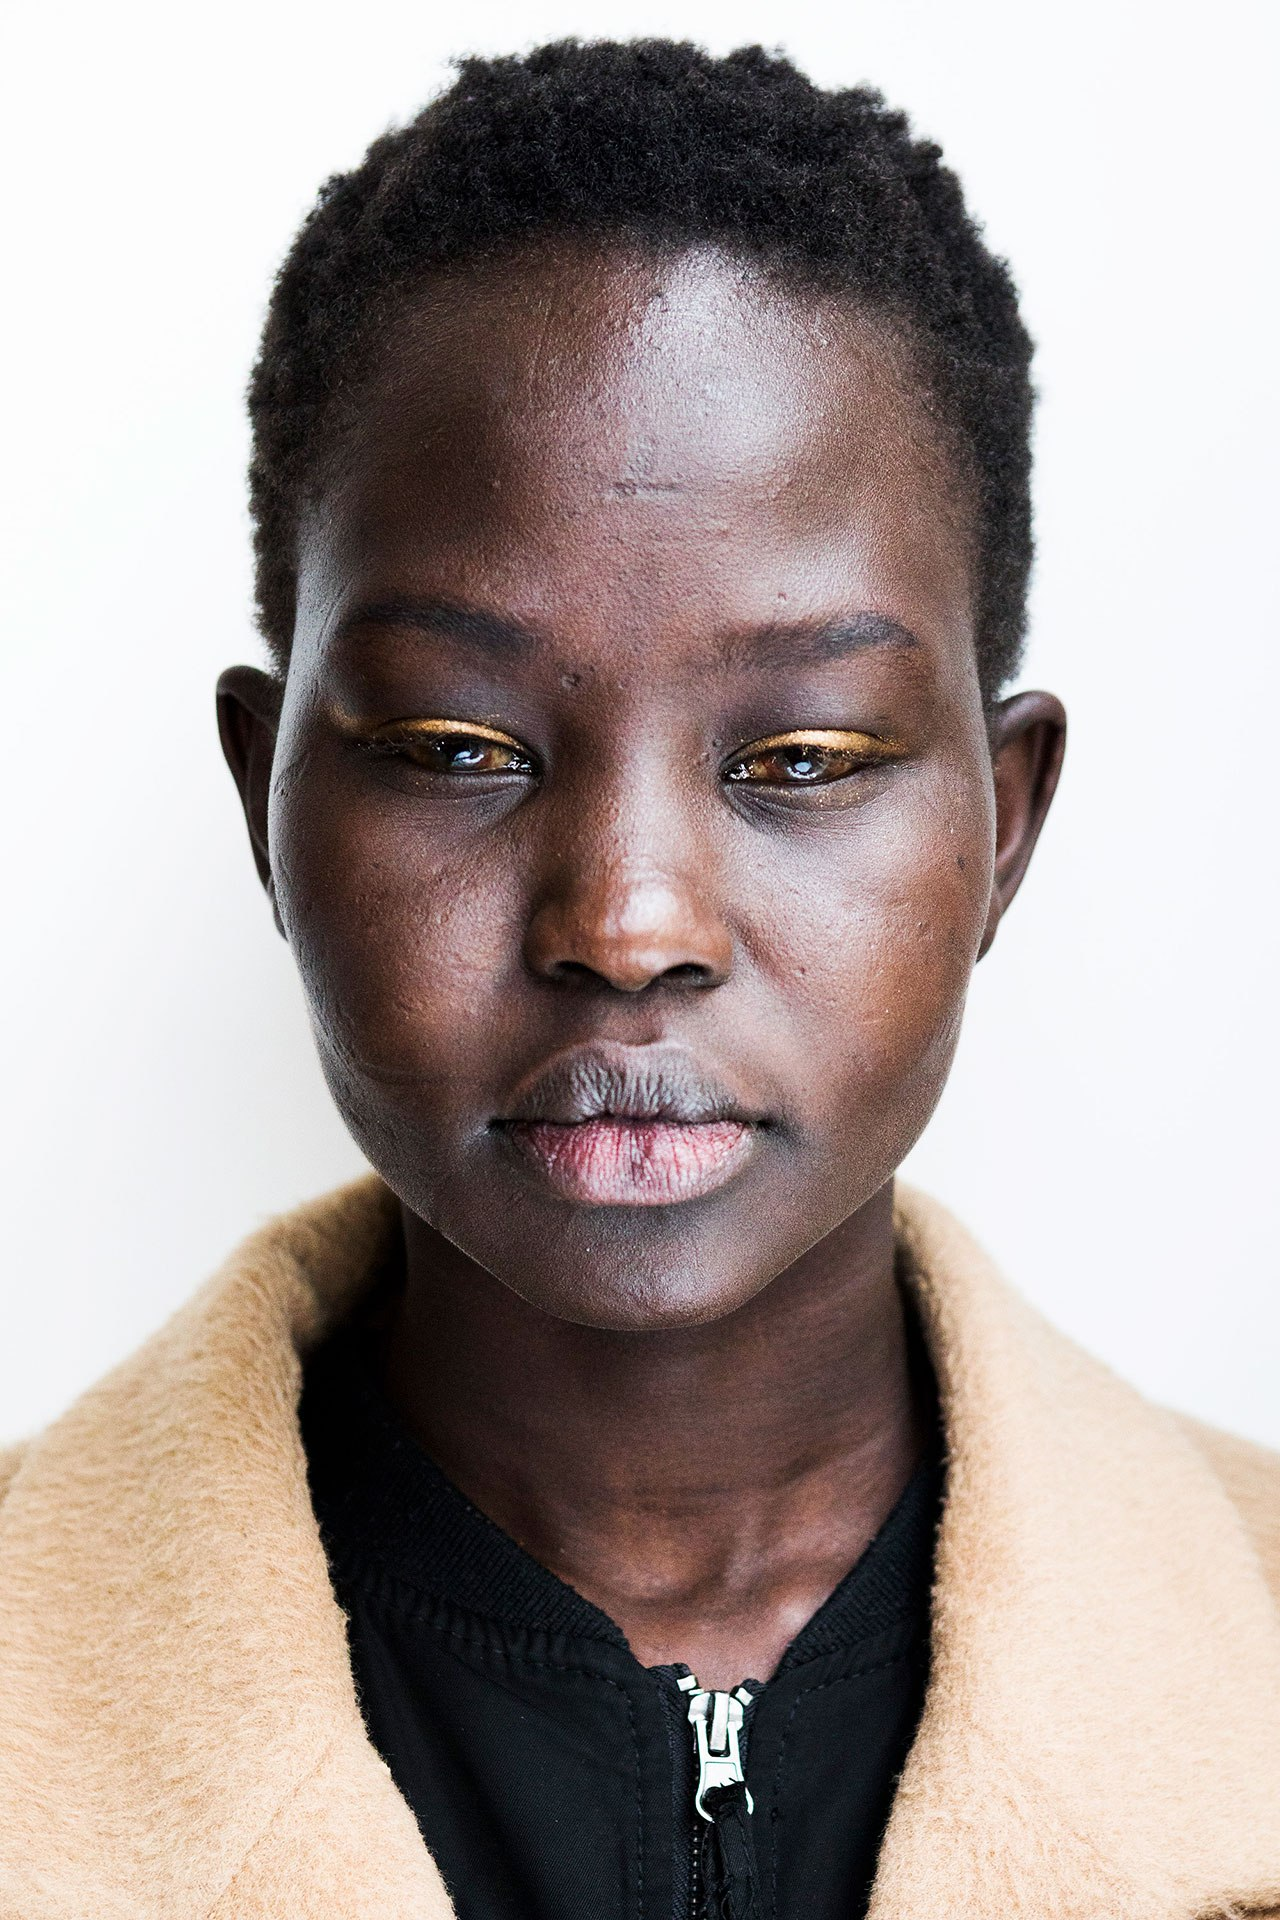 Fenty model Aweng Chuol on #BlueForSudan and the crisis in her home country